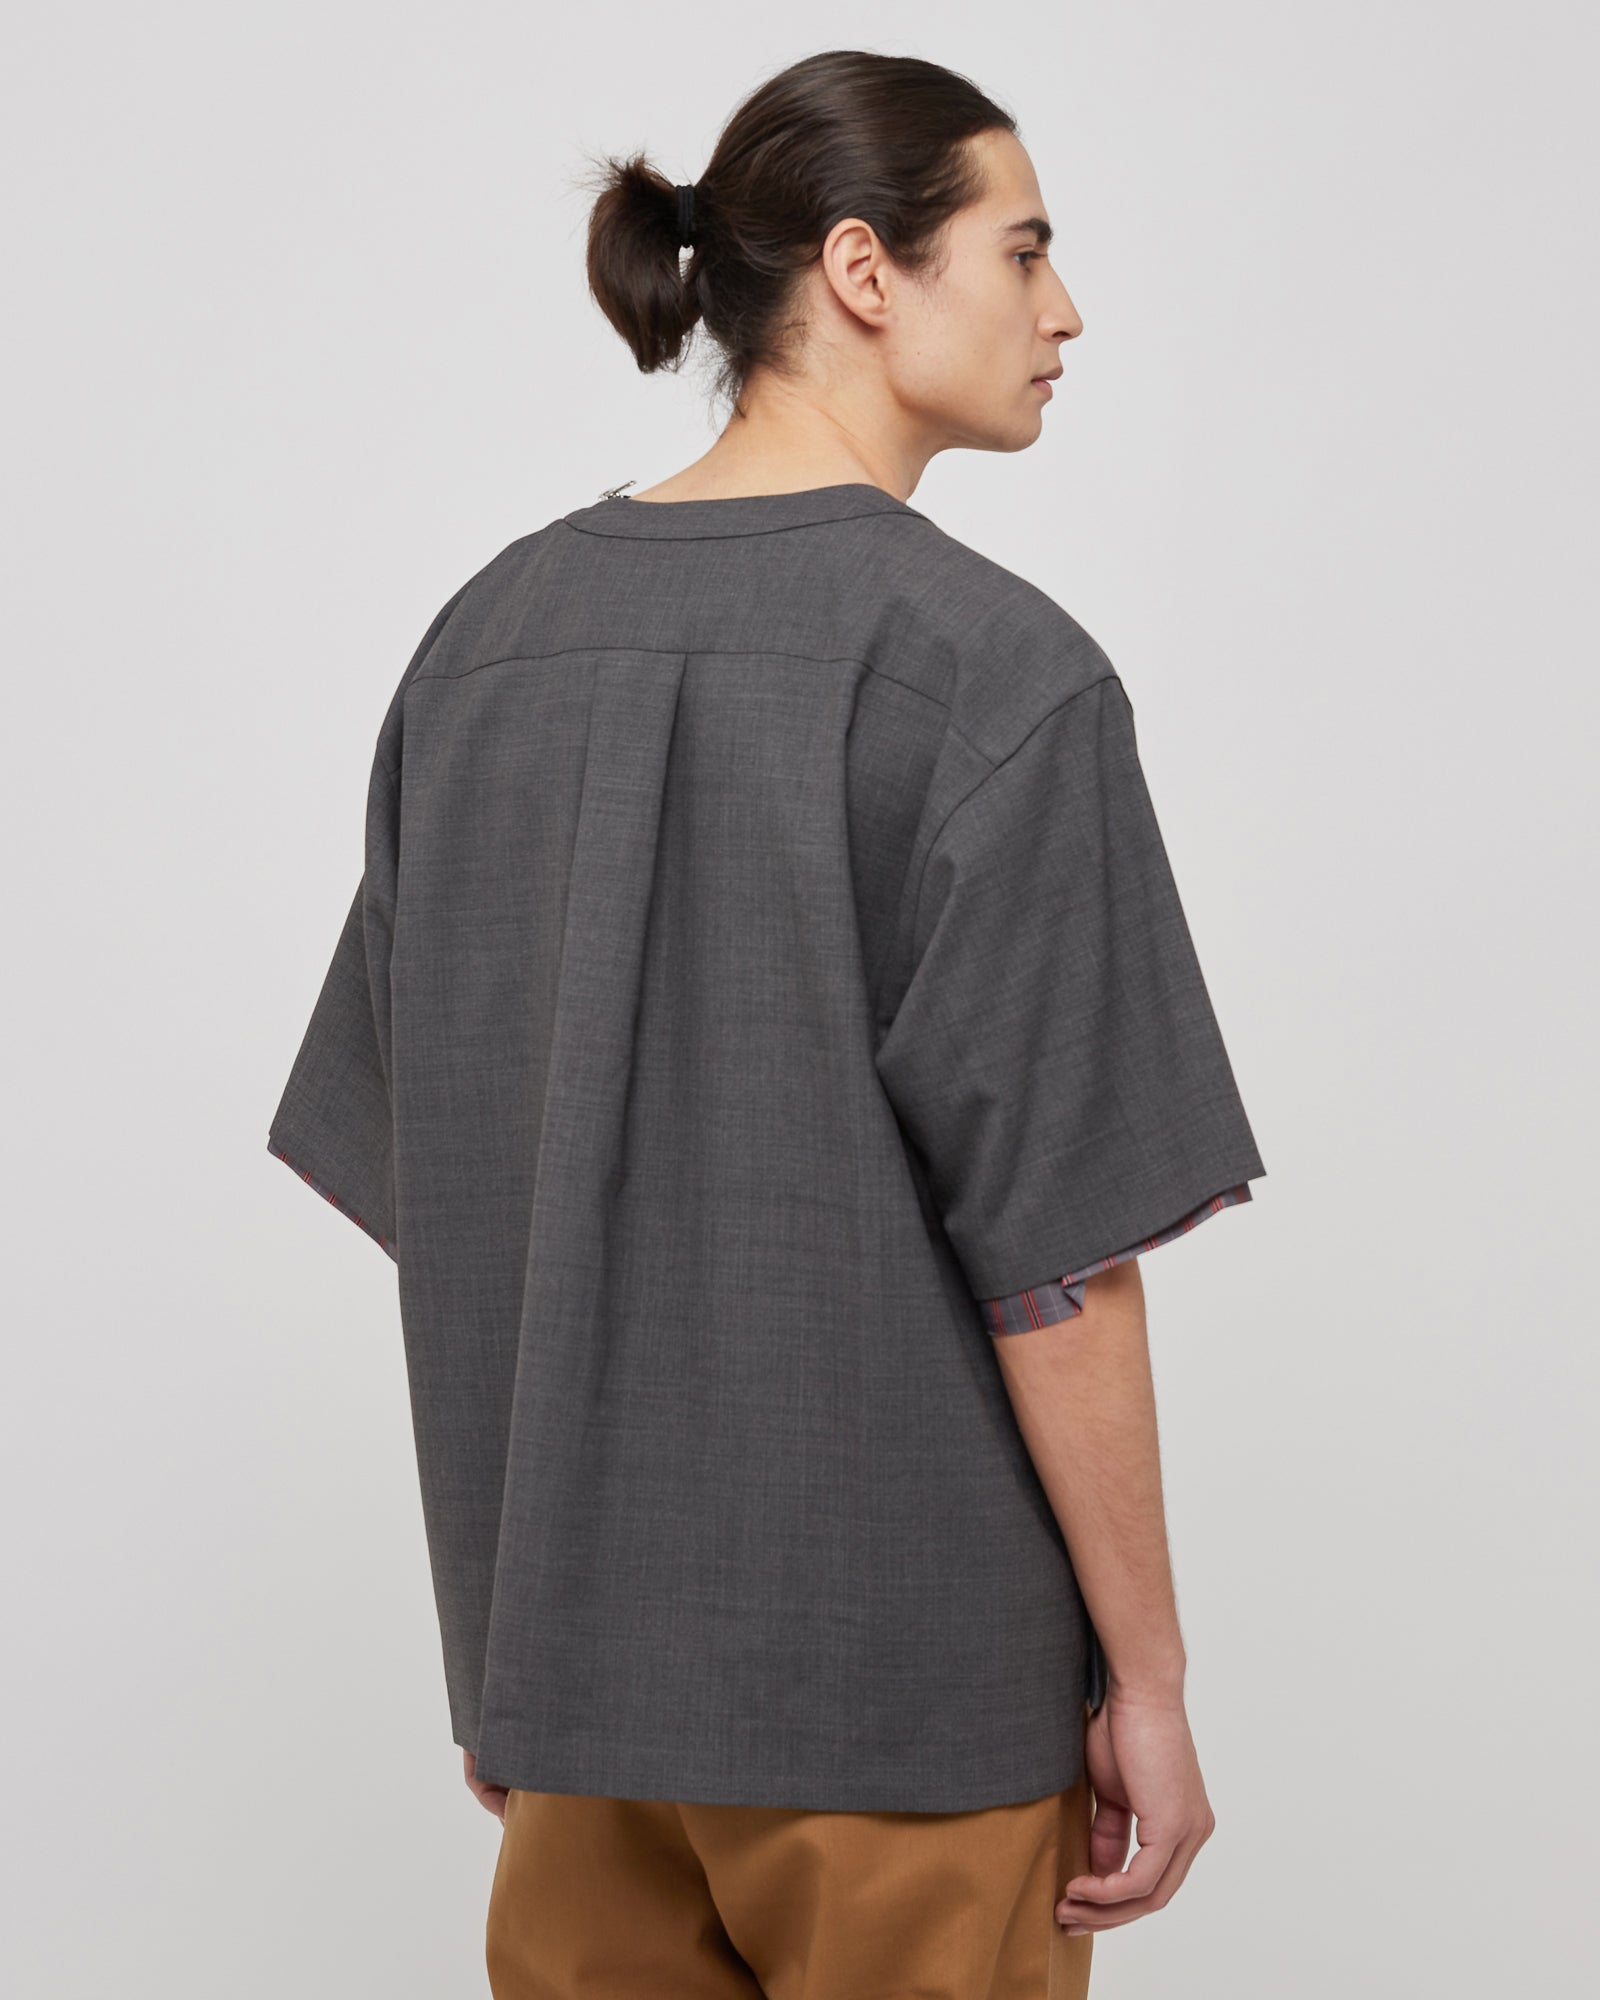 Suiting Pullover Shirt in Gray